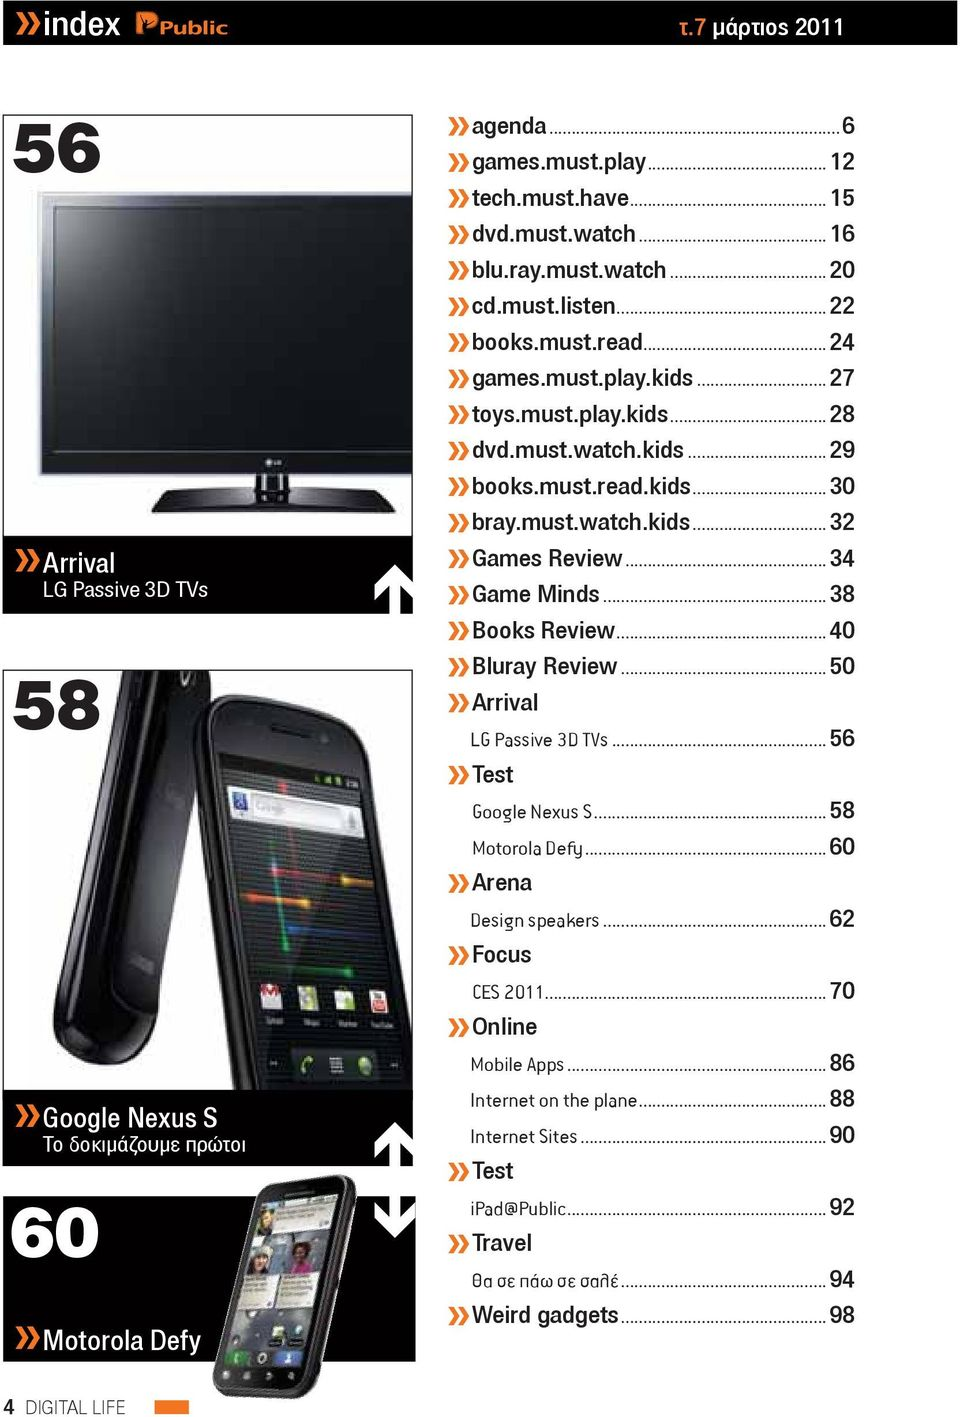 .. 34 Game Minds... 38 Books Review... 40 Bluray Review... 50» Arrival LG Passive 3D TVs... 56» Test Google Nexus S... 58 Motorola Defy... 60» Arena Design speakers... 62» Focus CES 2011.